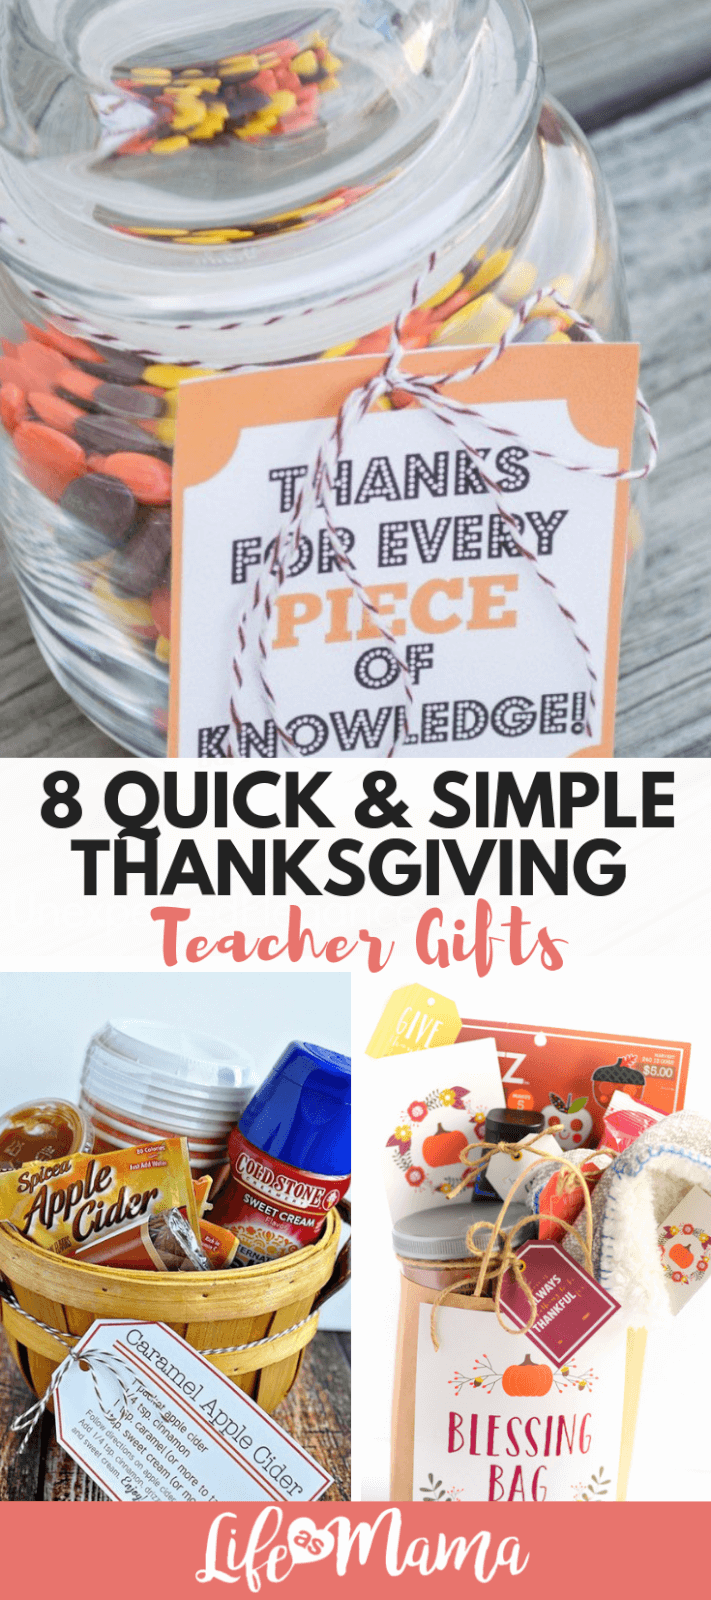 8 Quick & Simple Thanksgiving Teacher Gifts